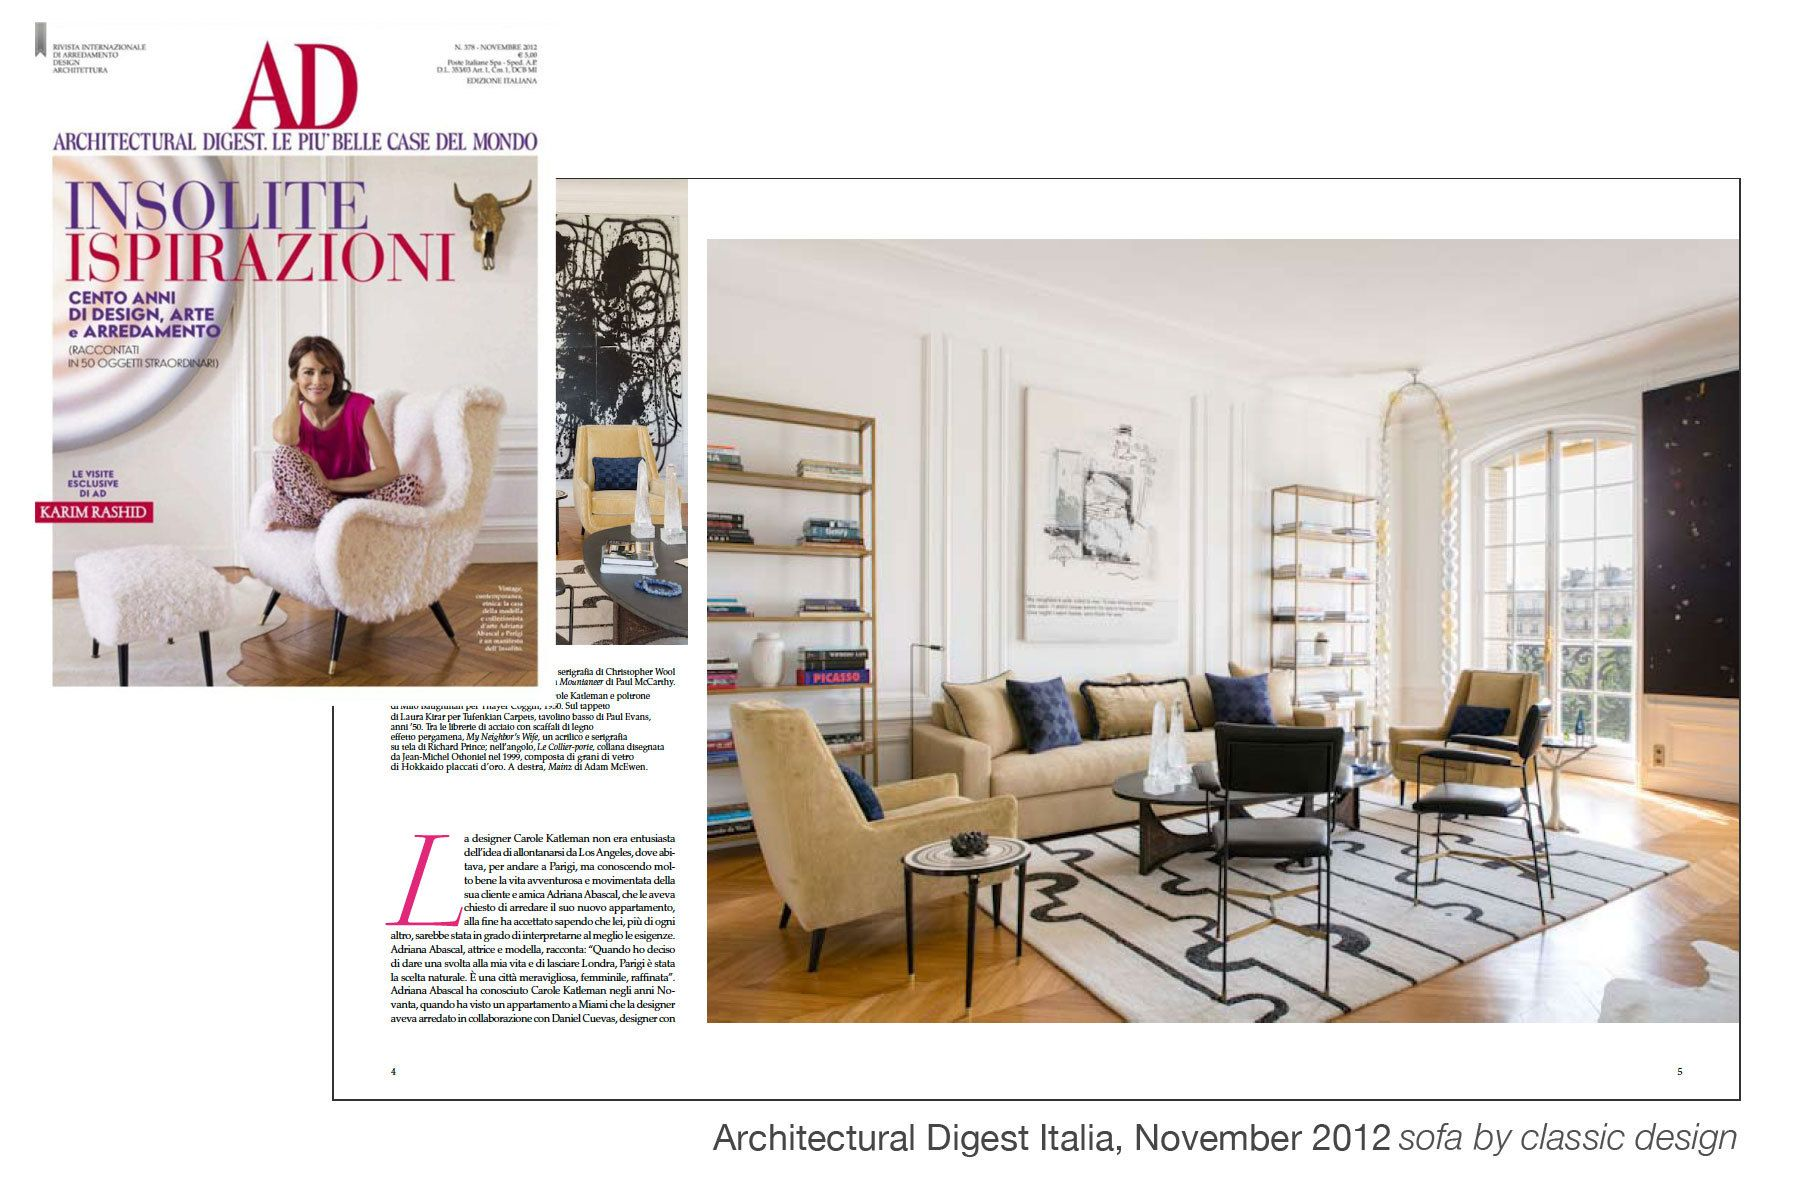 Architectural Digest Italia, November 2012